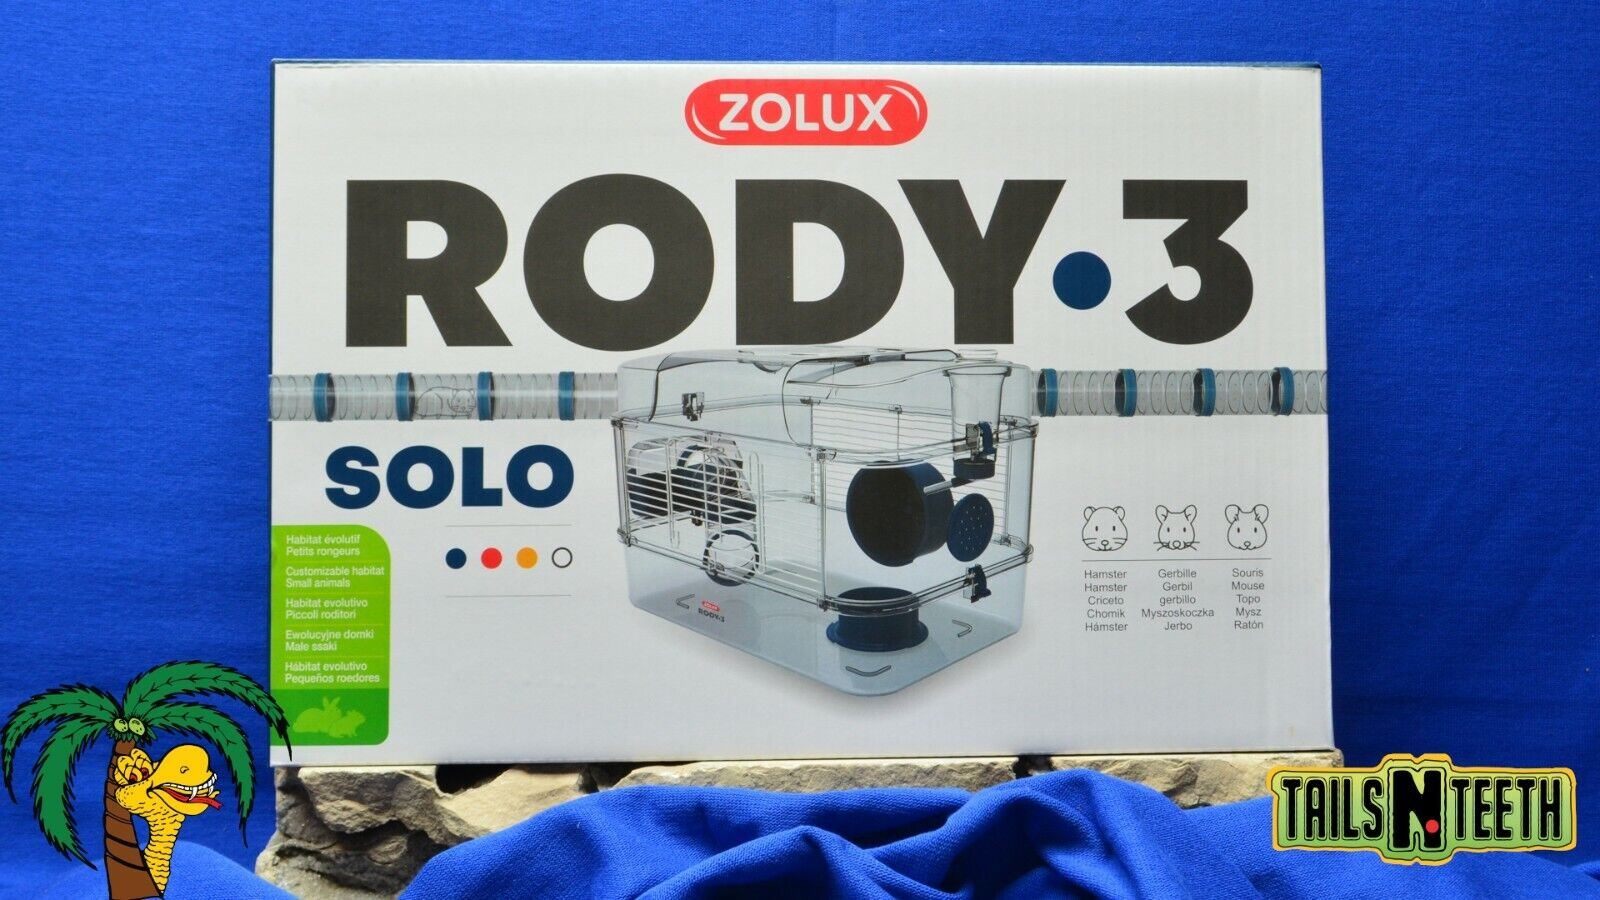 Zolux RODY-3 SOLO Cage For Hamsters Gerbils Mice - Blue - InterConnecting Cages - CA$46.99